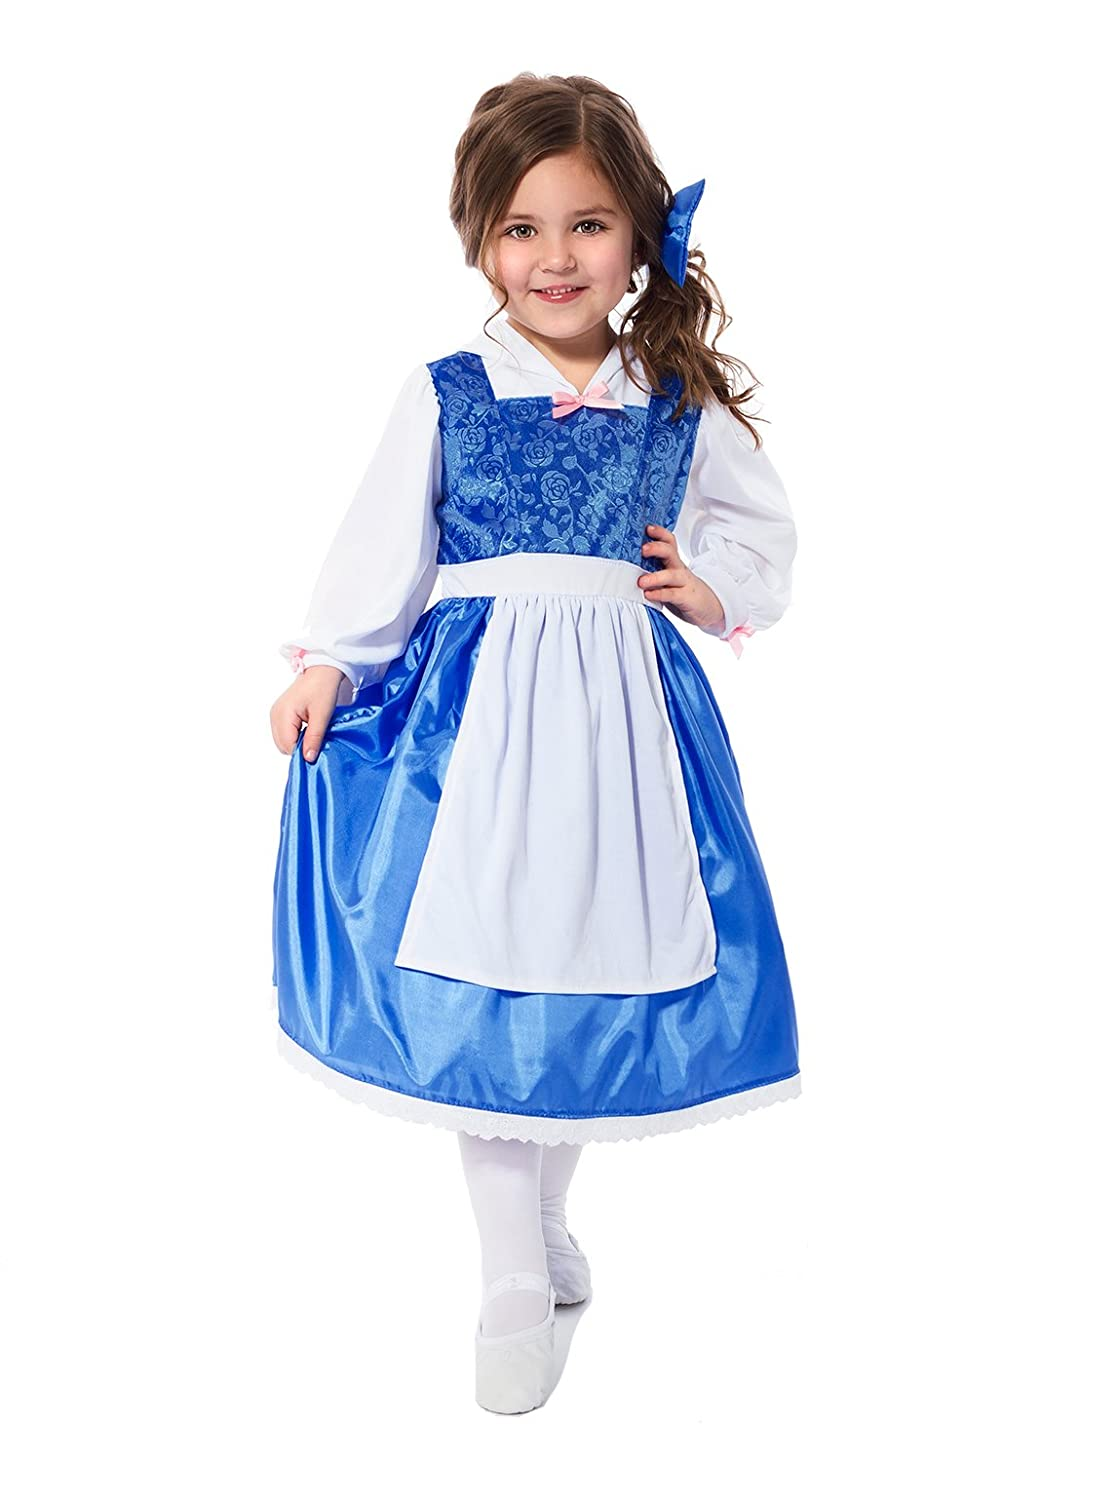 Little Adventures Beauty Day Dress Princess Belle Blue Dress Up Costume for Girls